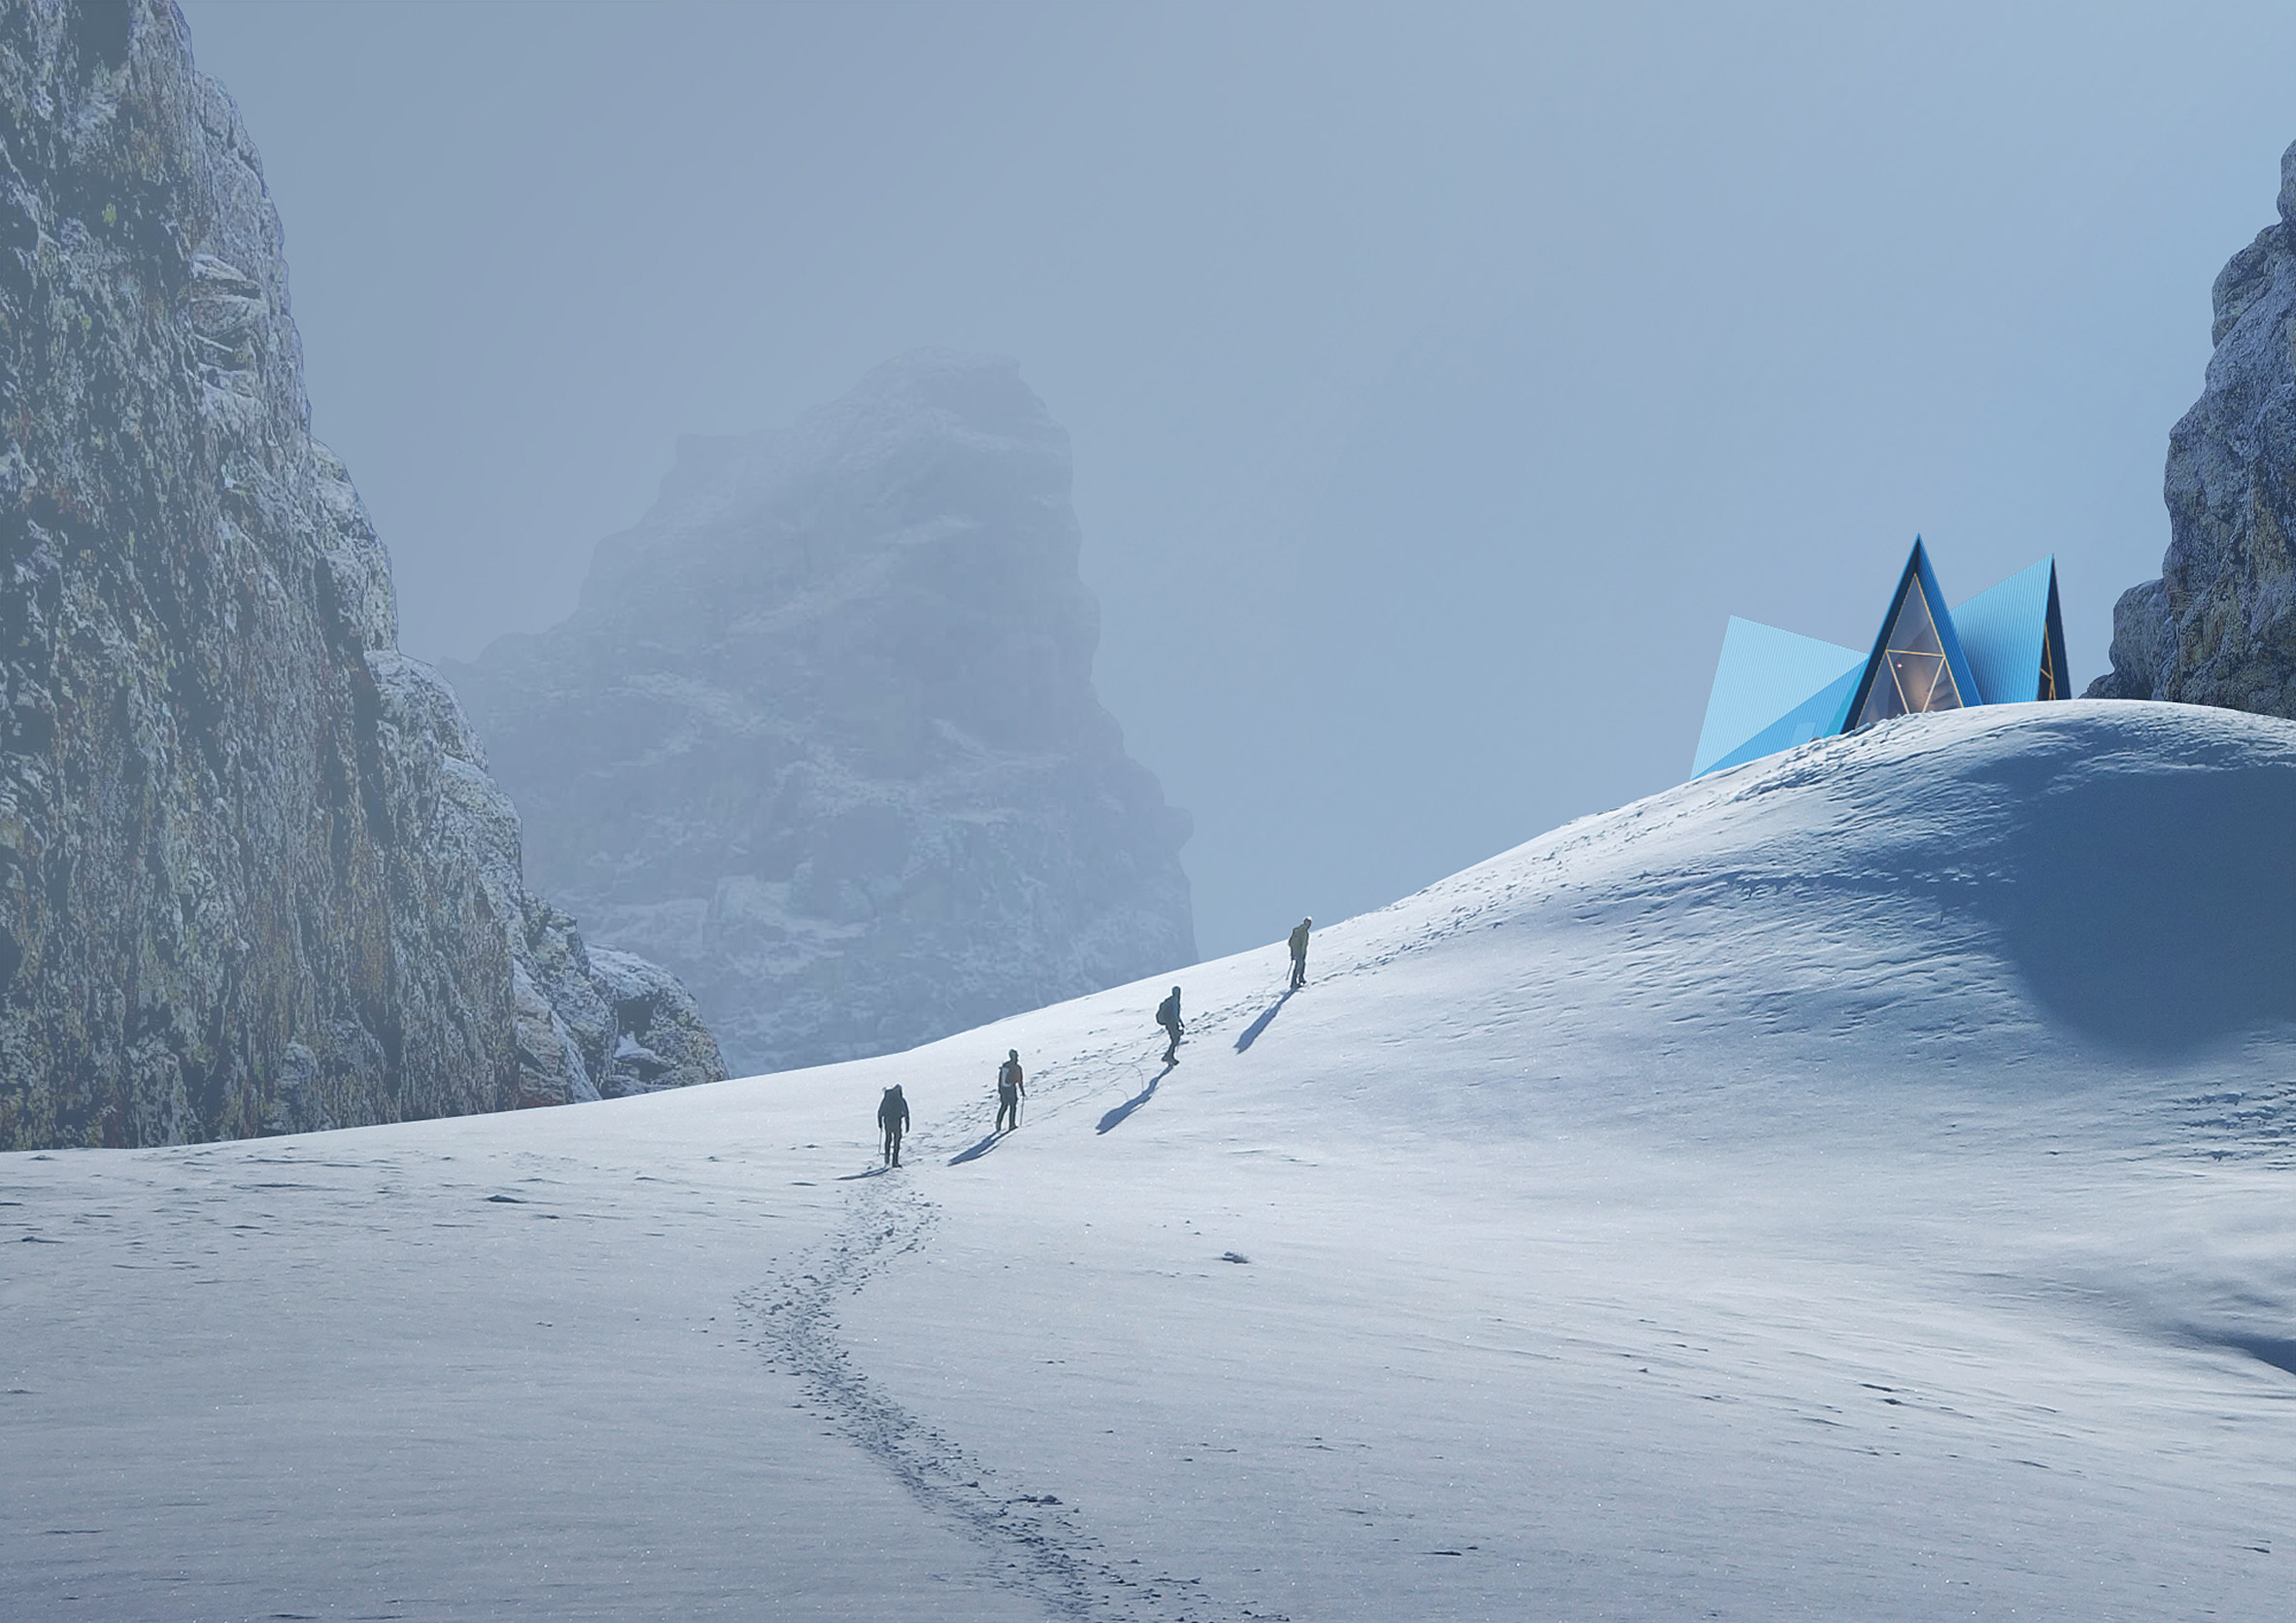 Skýli mountain shelter is designed to withstand extreme weather conditions